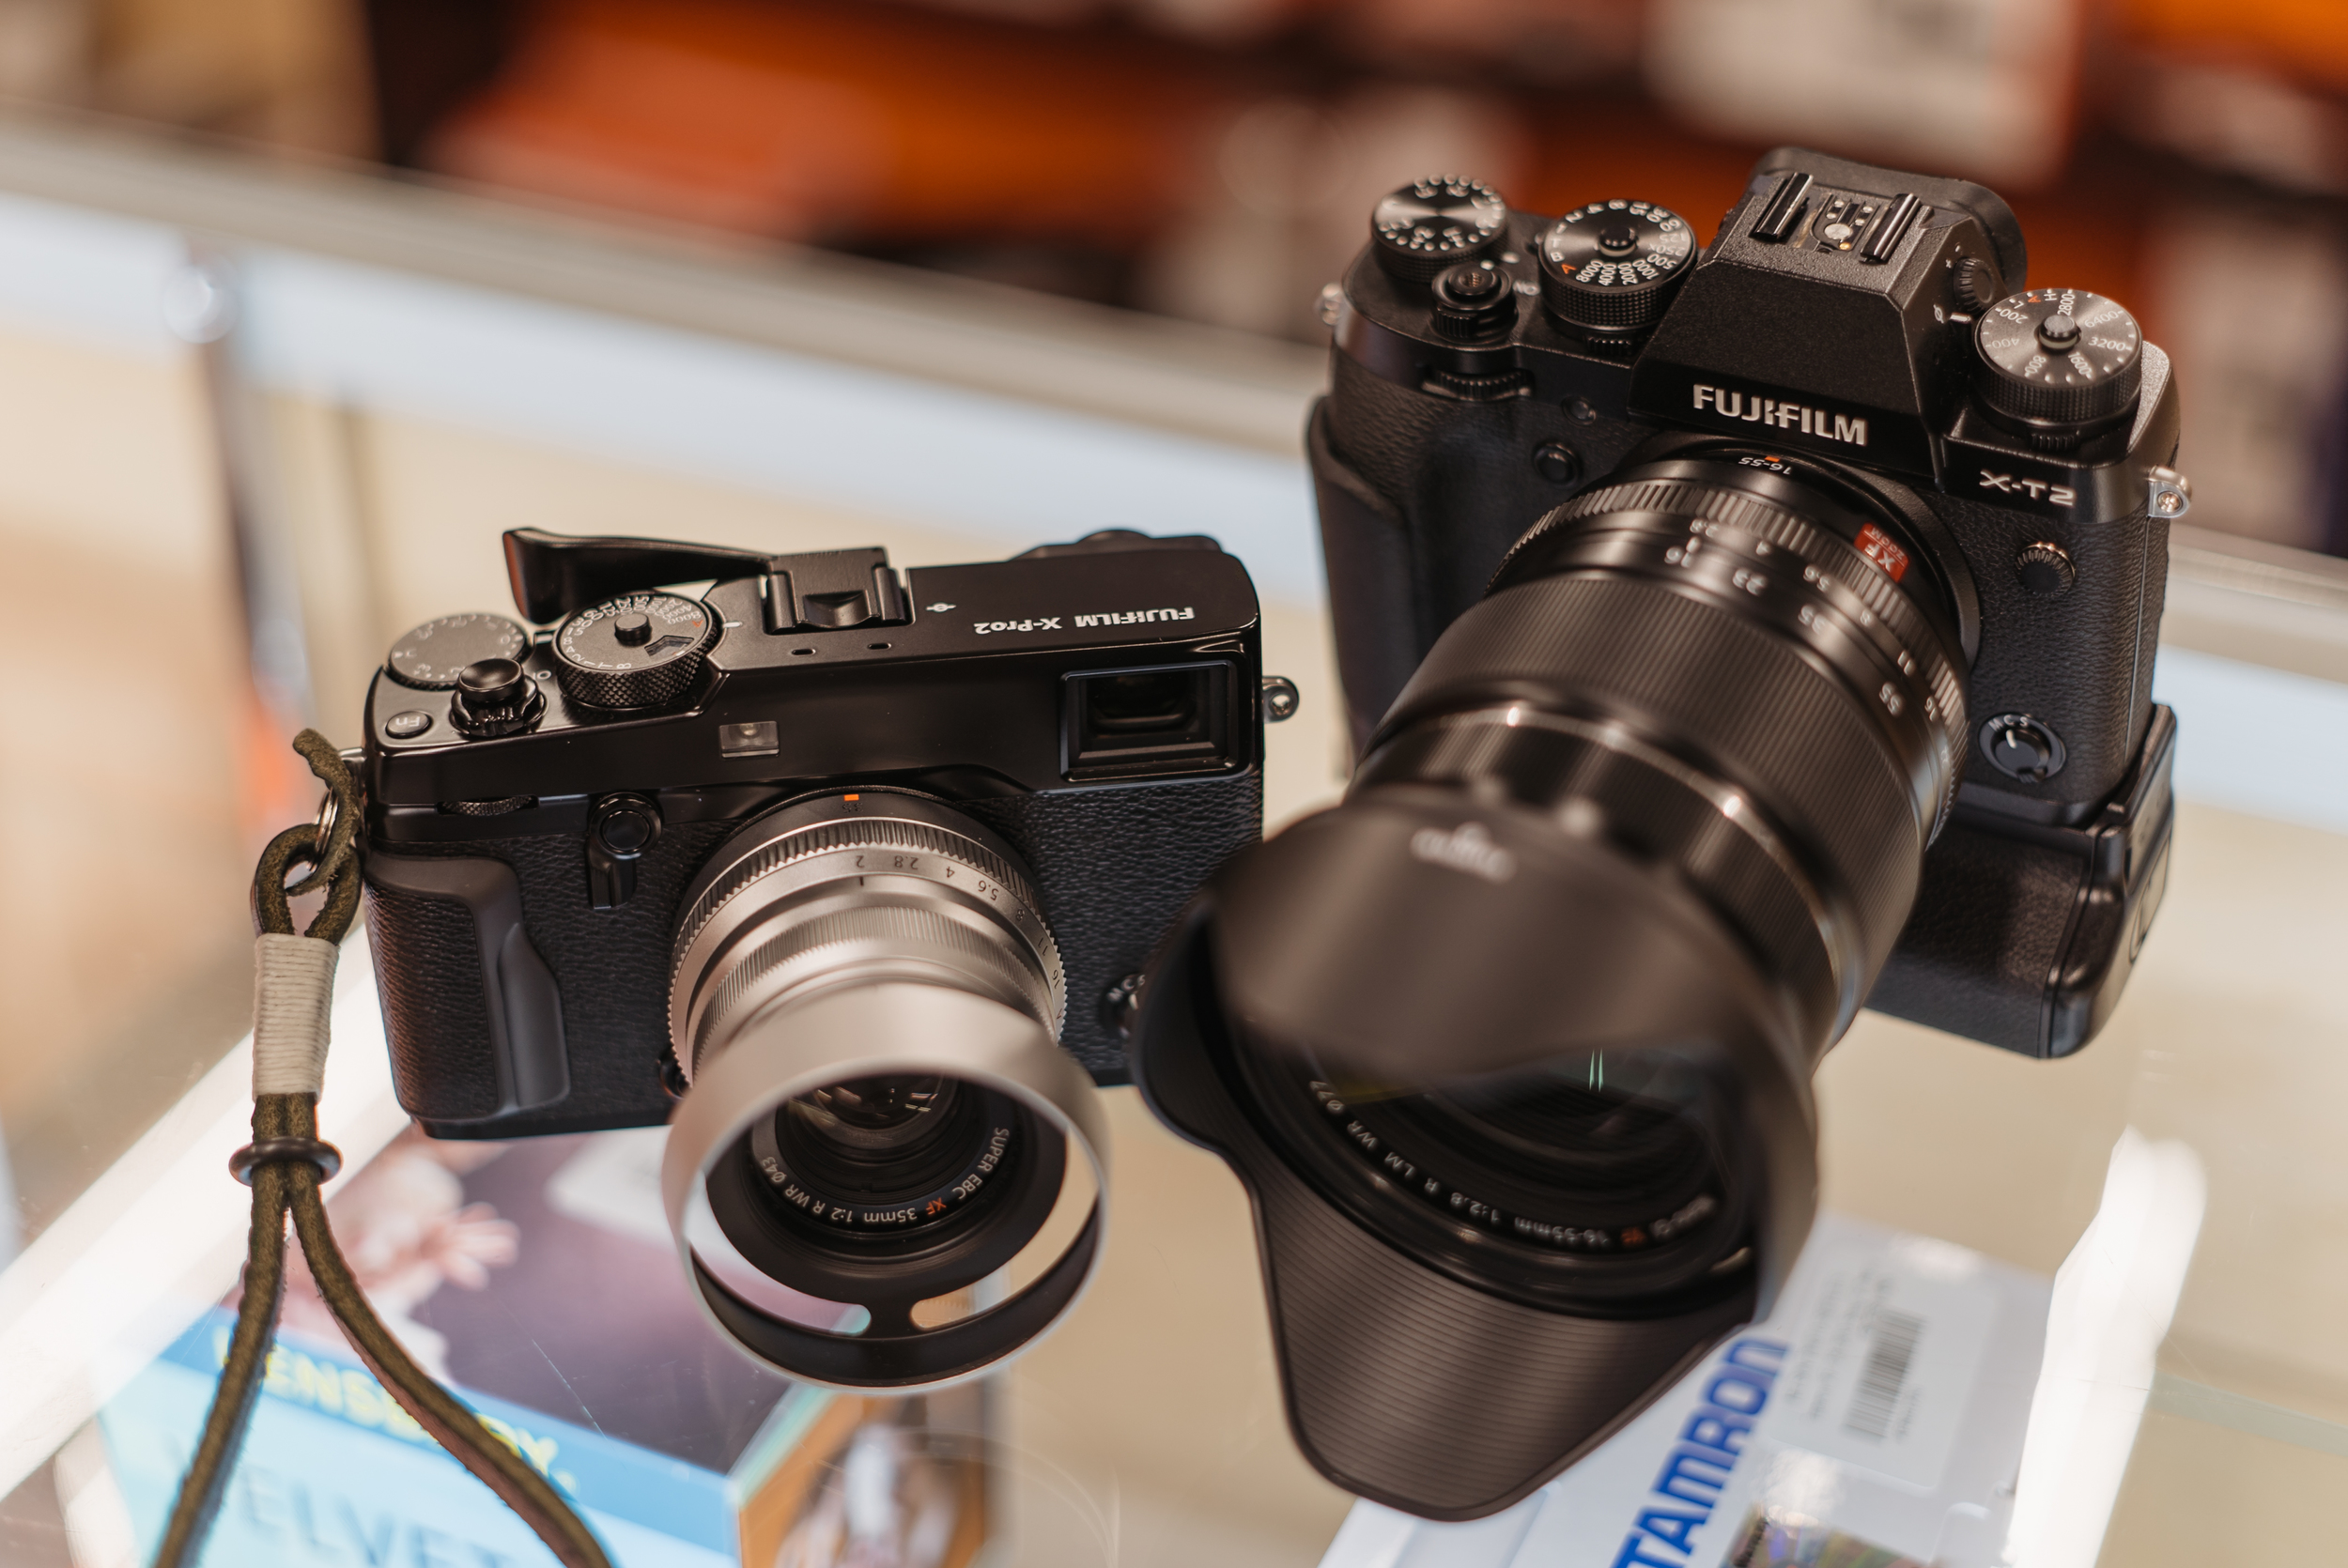 Both are wonderful for different reasons, but the XT-2 is a better package